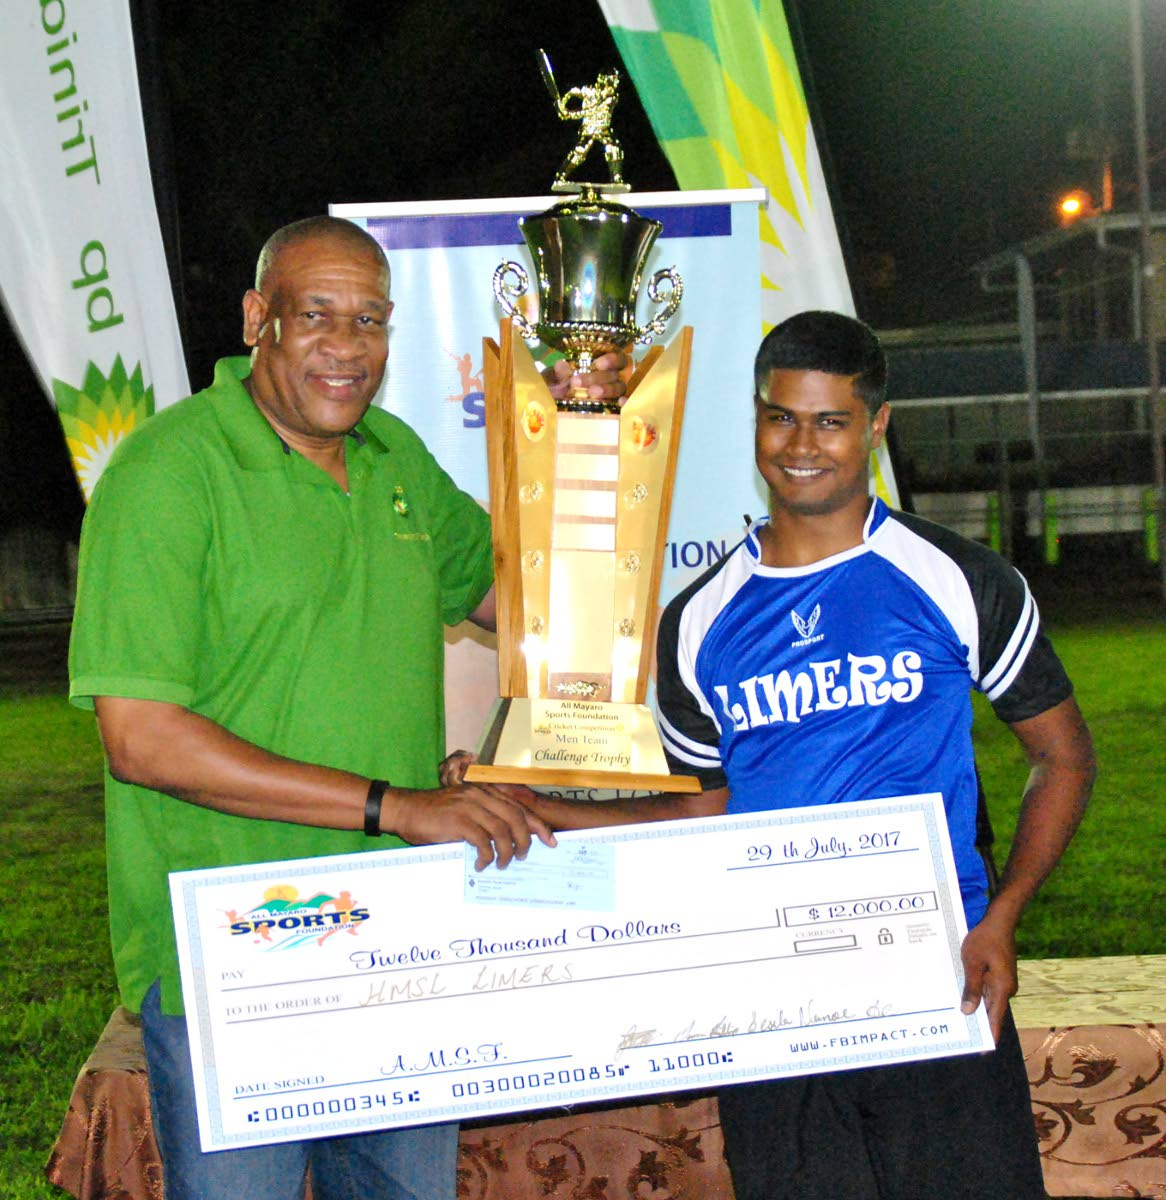 BPTT's Matthew Pierre (left) presents the coveted league championship trophy and winners' cheque to Mark Rampersad, captain of Limers, at the presentation of prizes in the 2017 BPTT Mayaro Night Windball Cricket League.